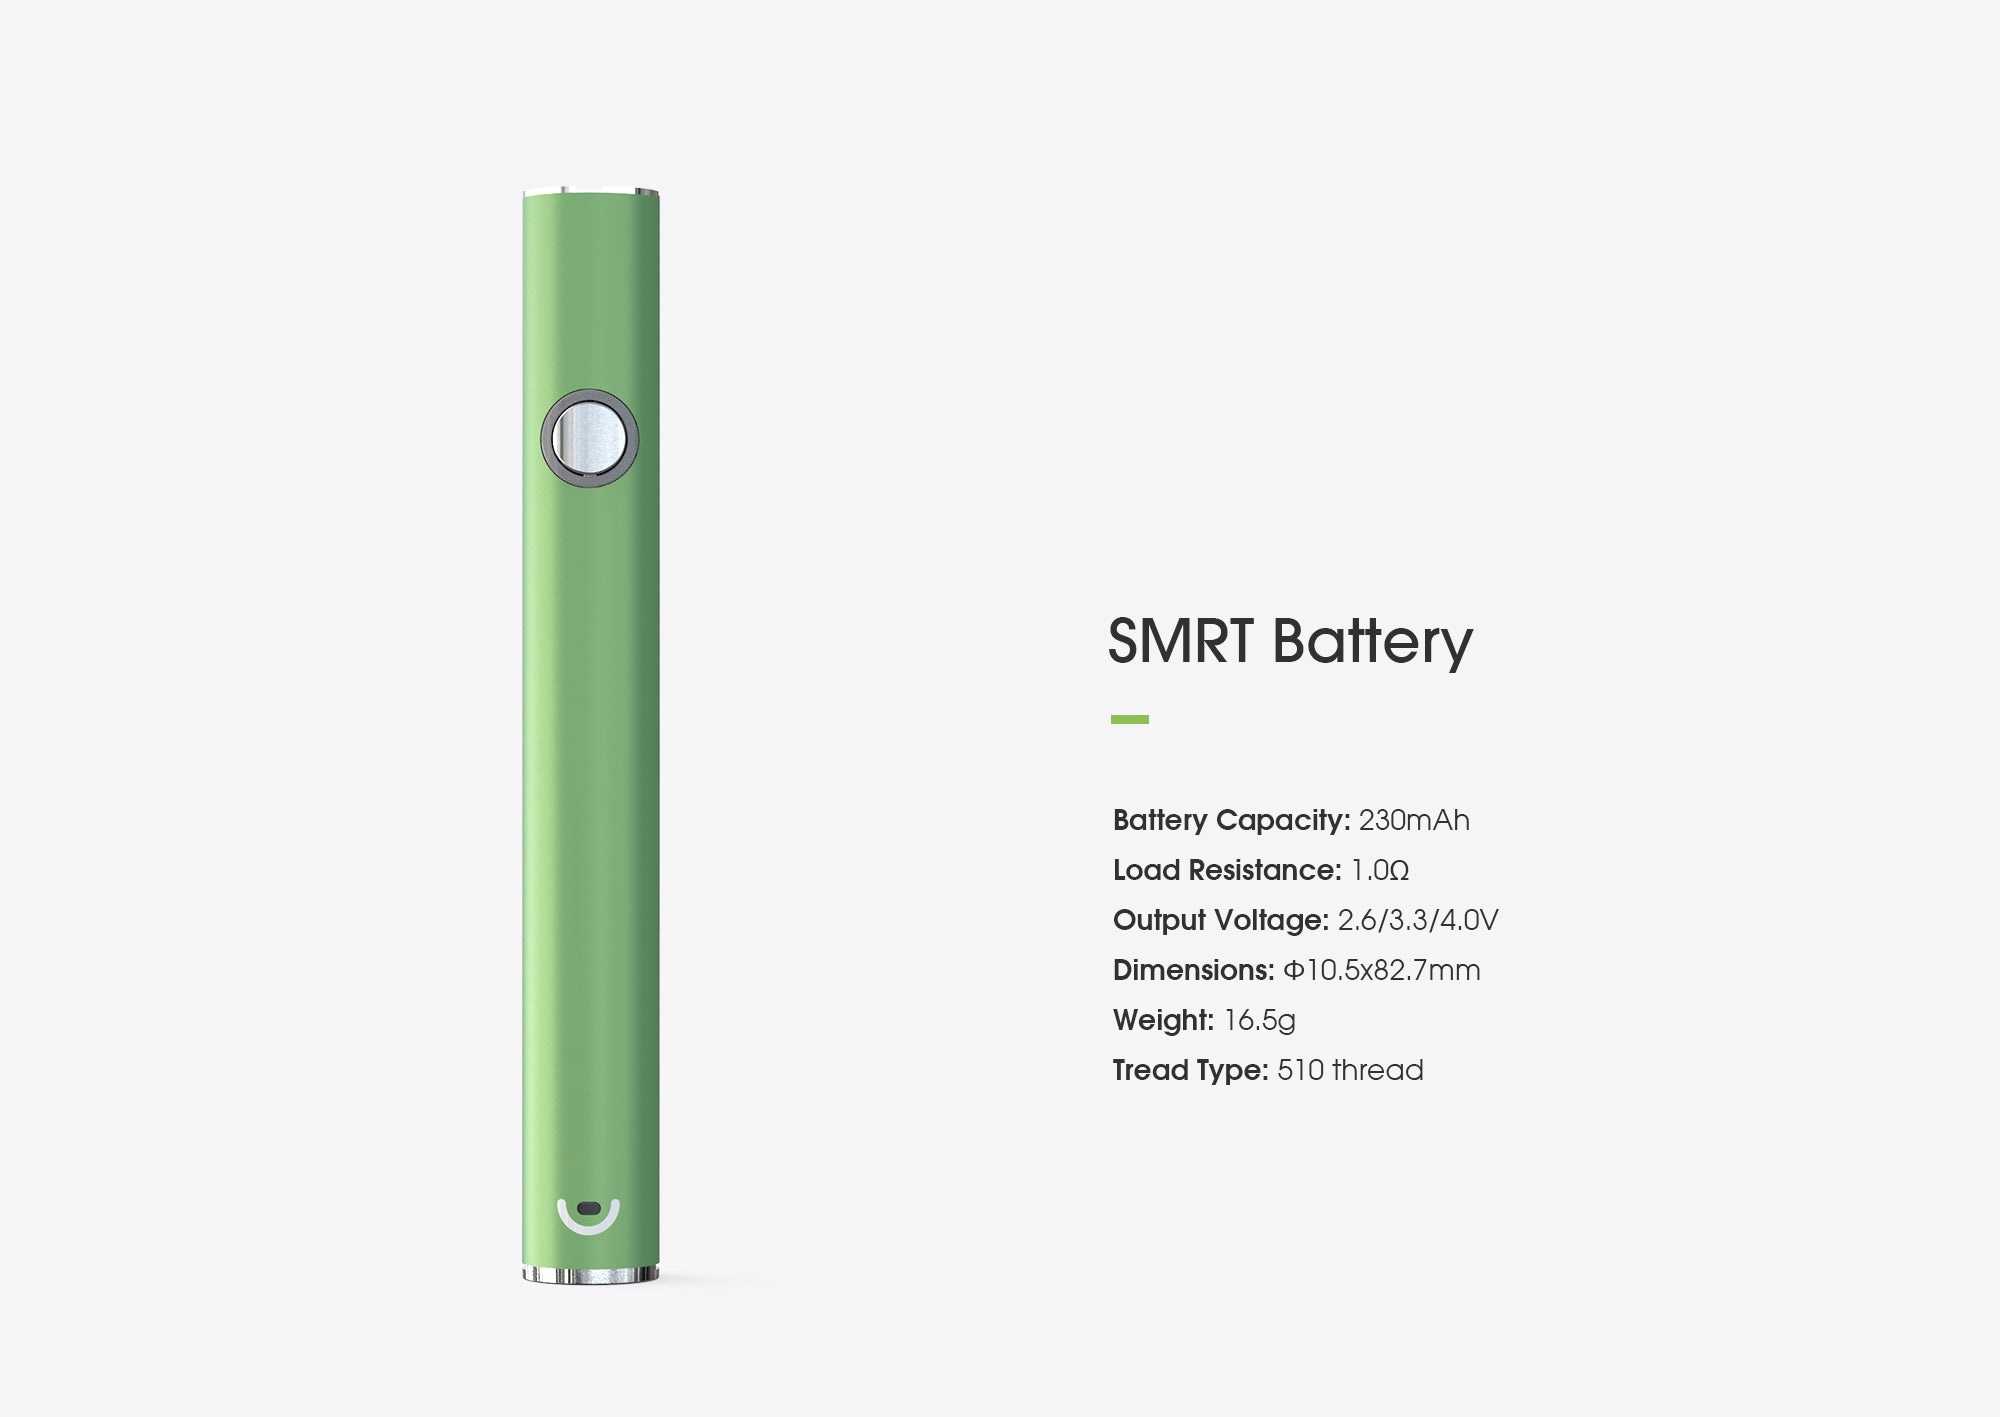 CRMC SMRT BATTERY technology